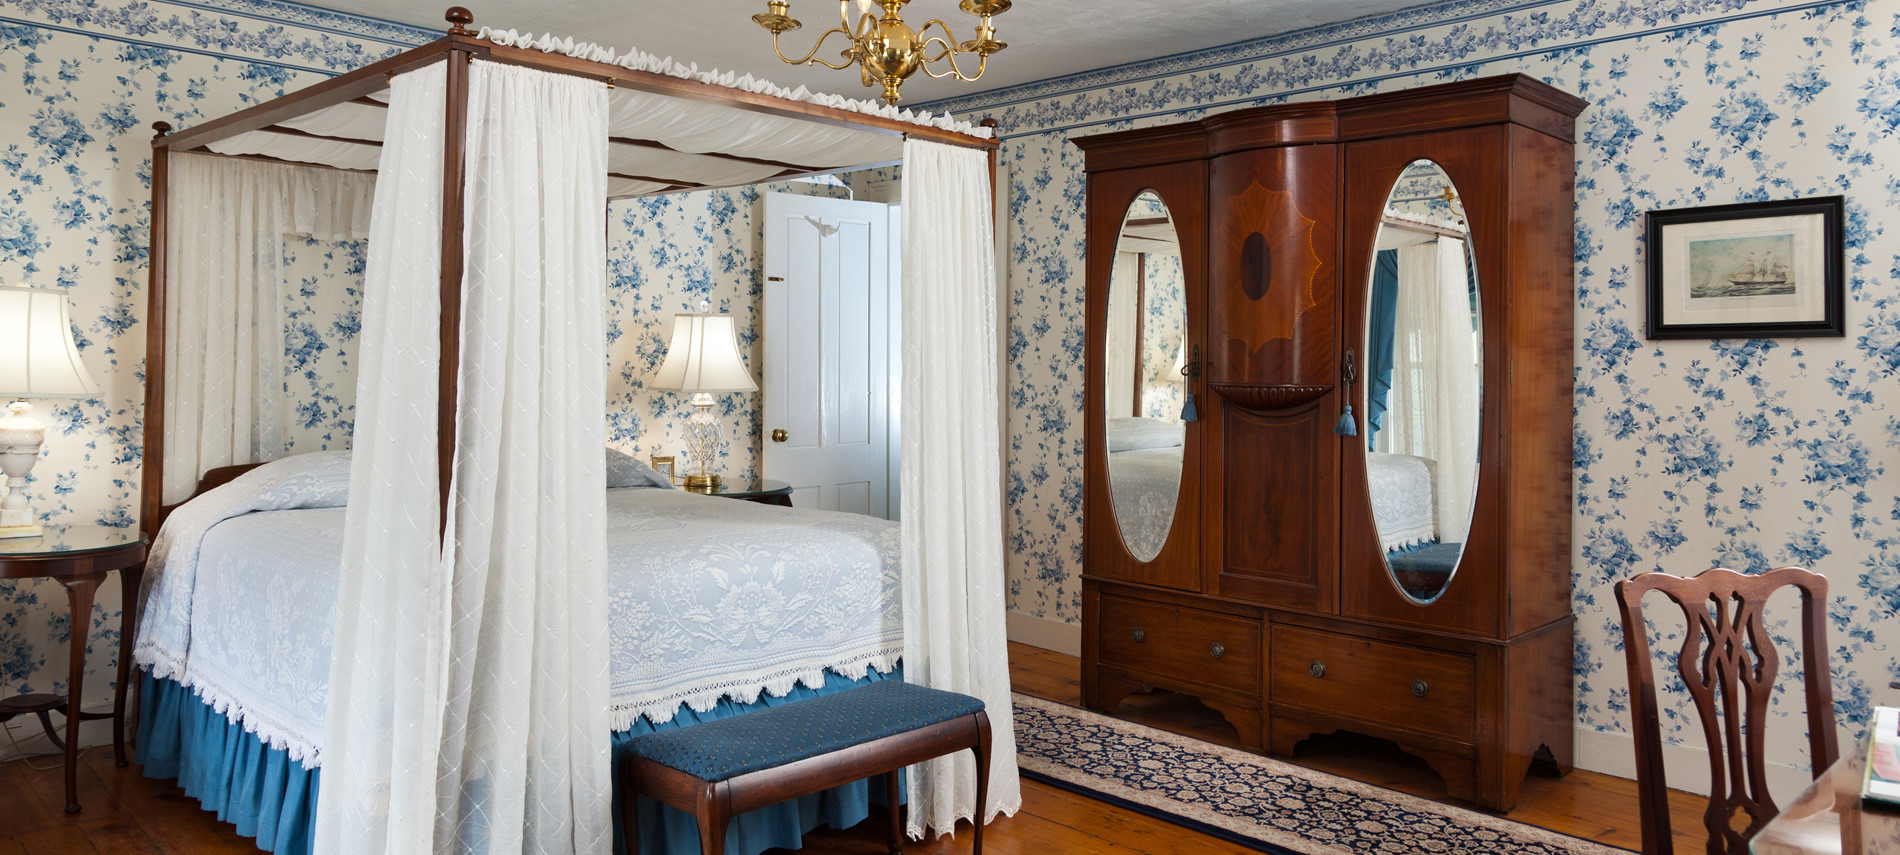 Grand Queen Size bed with a canopy bed with english bed dressings. Large Federal Style Armor with mirrors